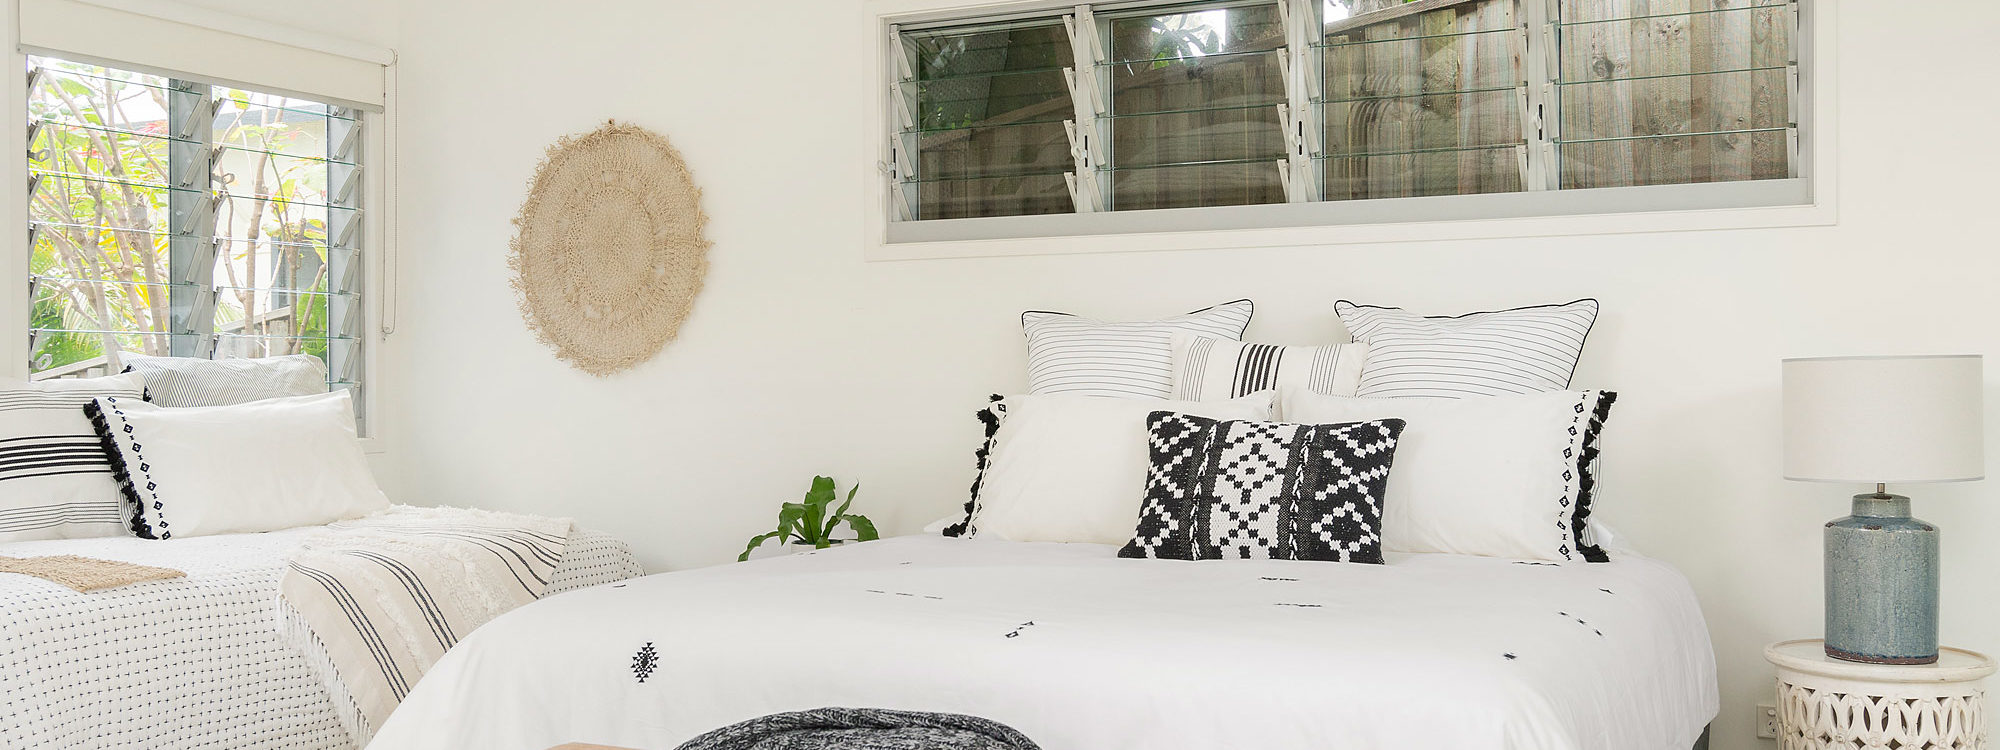 The White Rabbit - Byron Bay - Studio Bedroom b